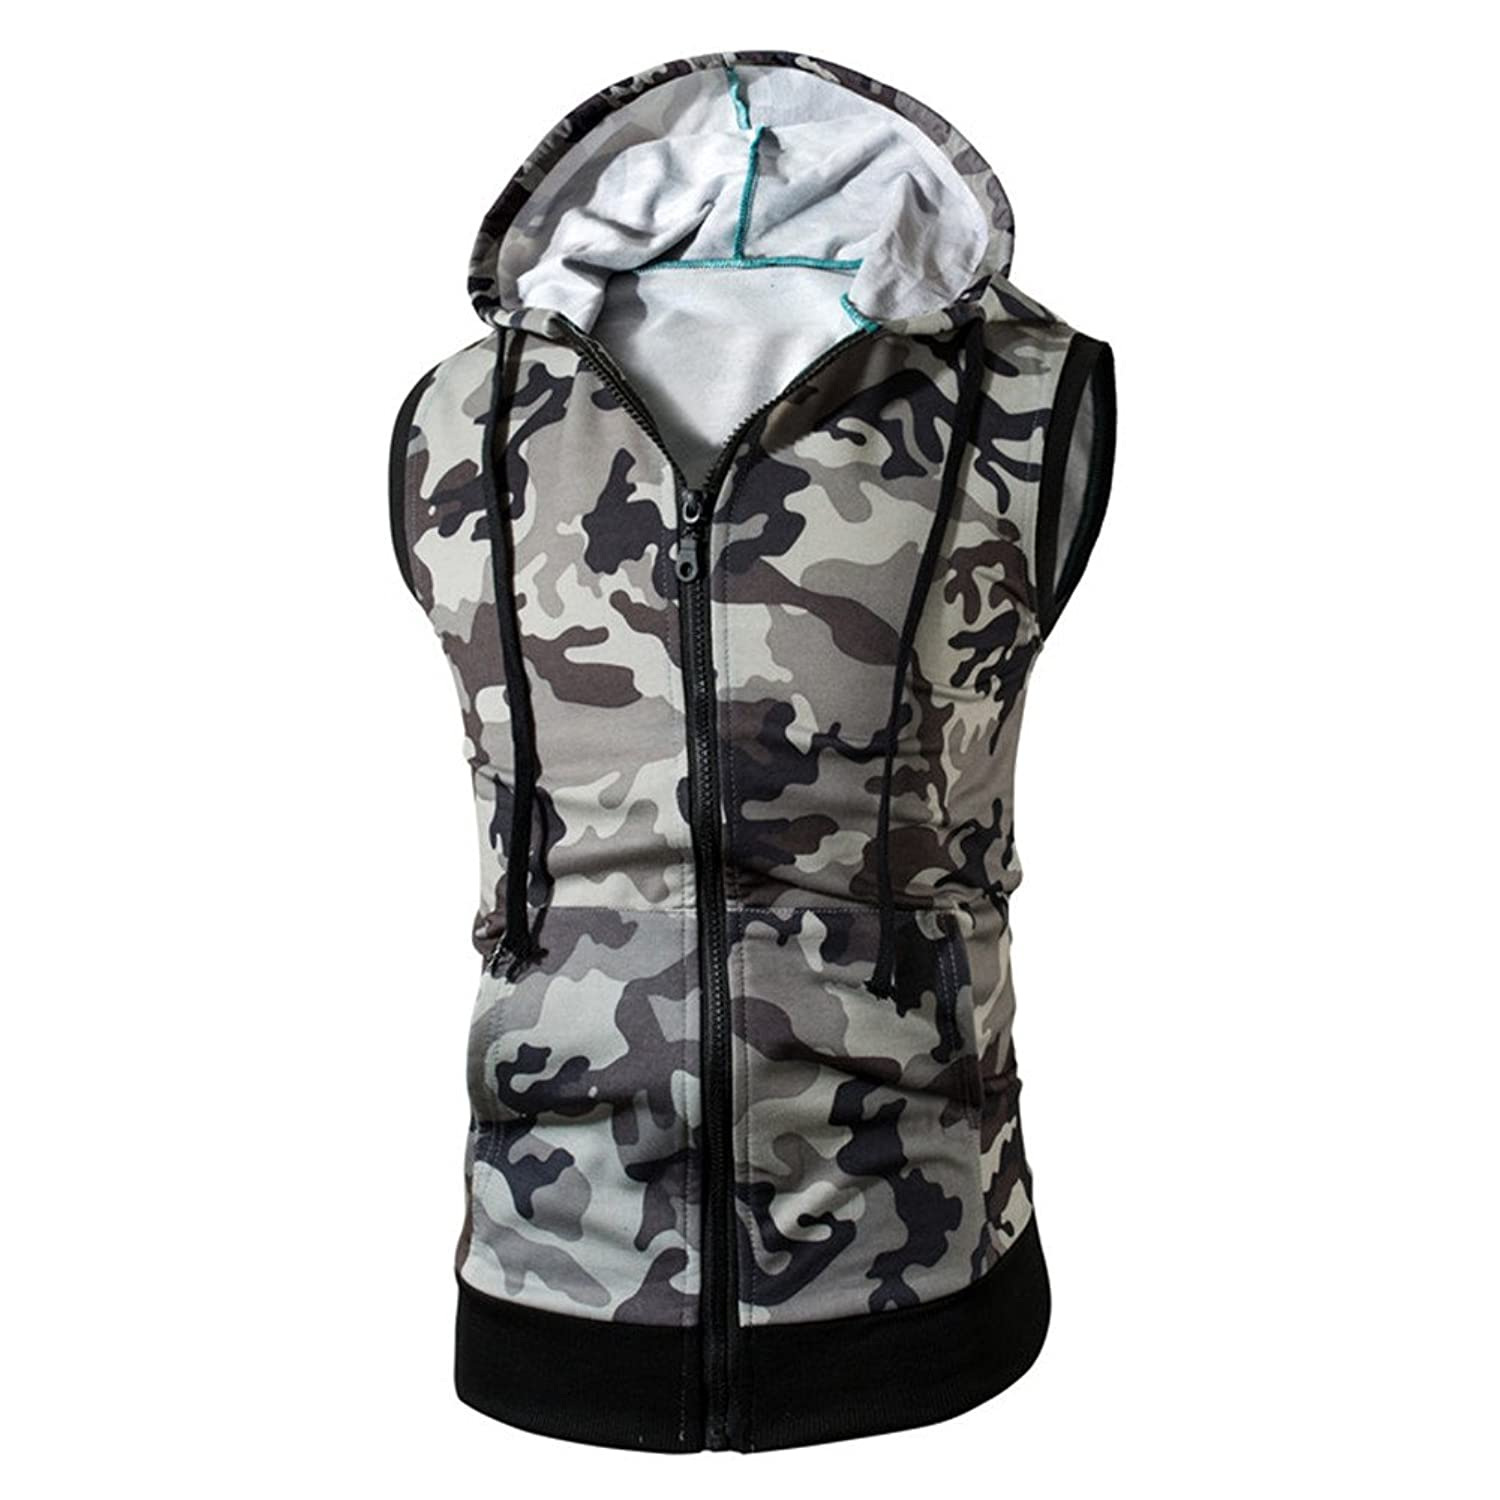 NiuZi Men's Casual Sleeveless Hoodies Outedoors Sports Camouflage Zippered Hoodie